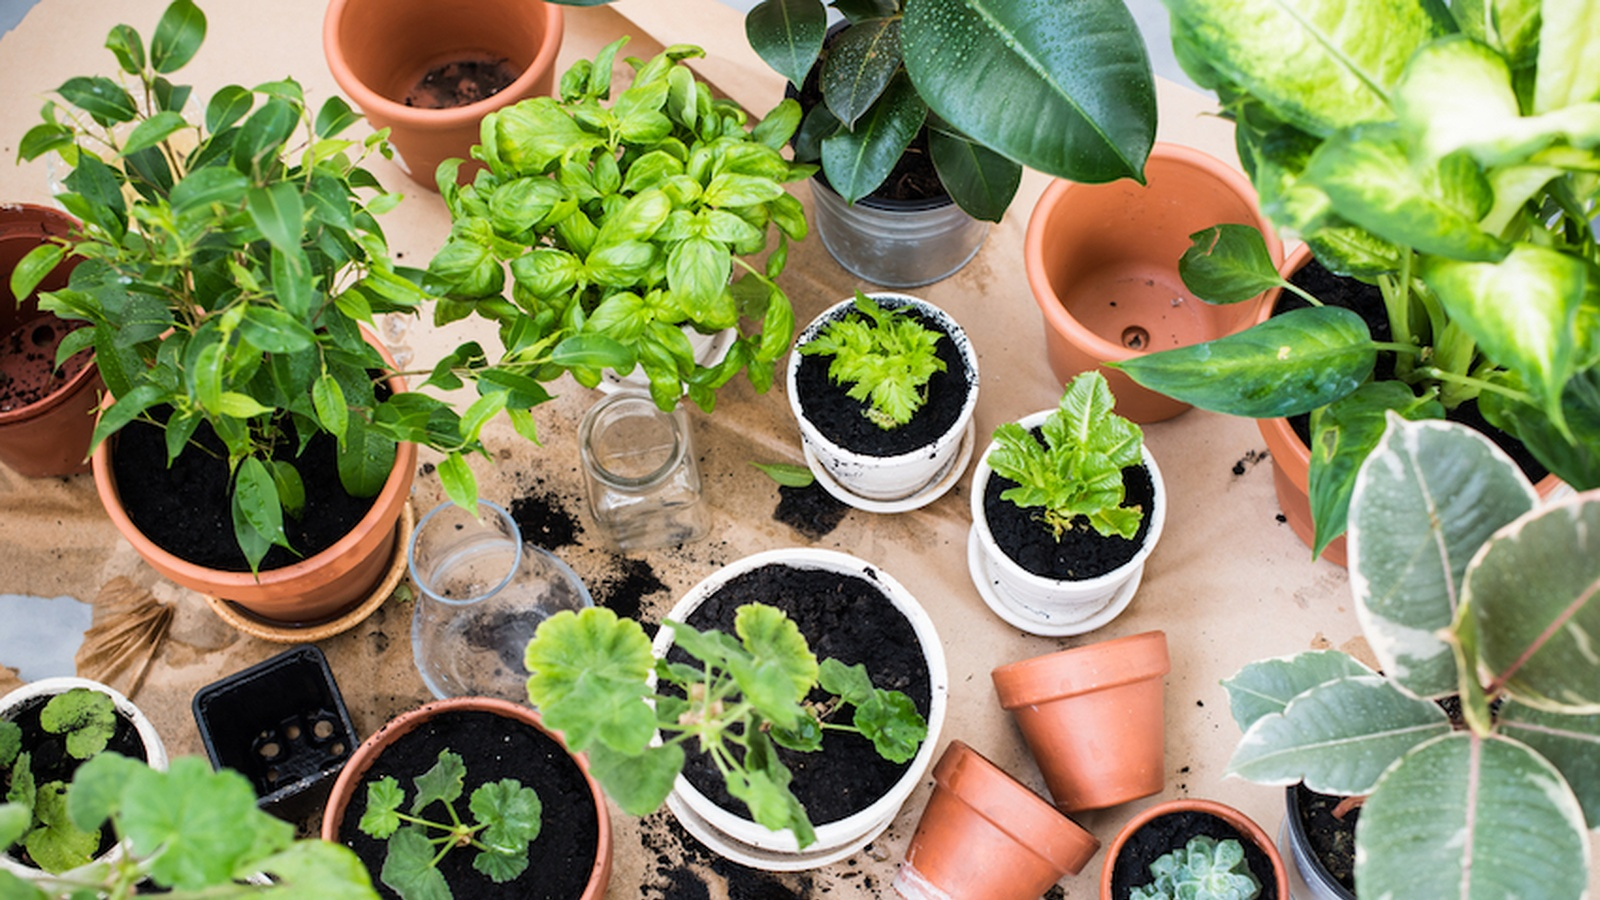 8 Easy Foods To Grow In Almost Any Home